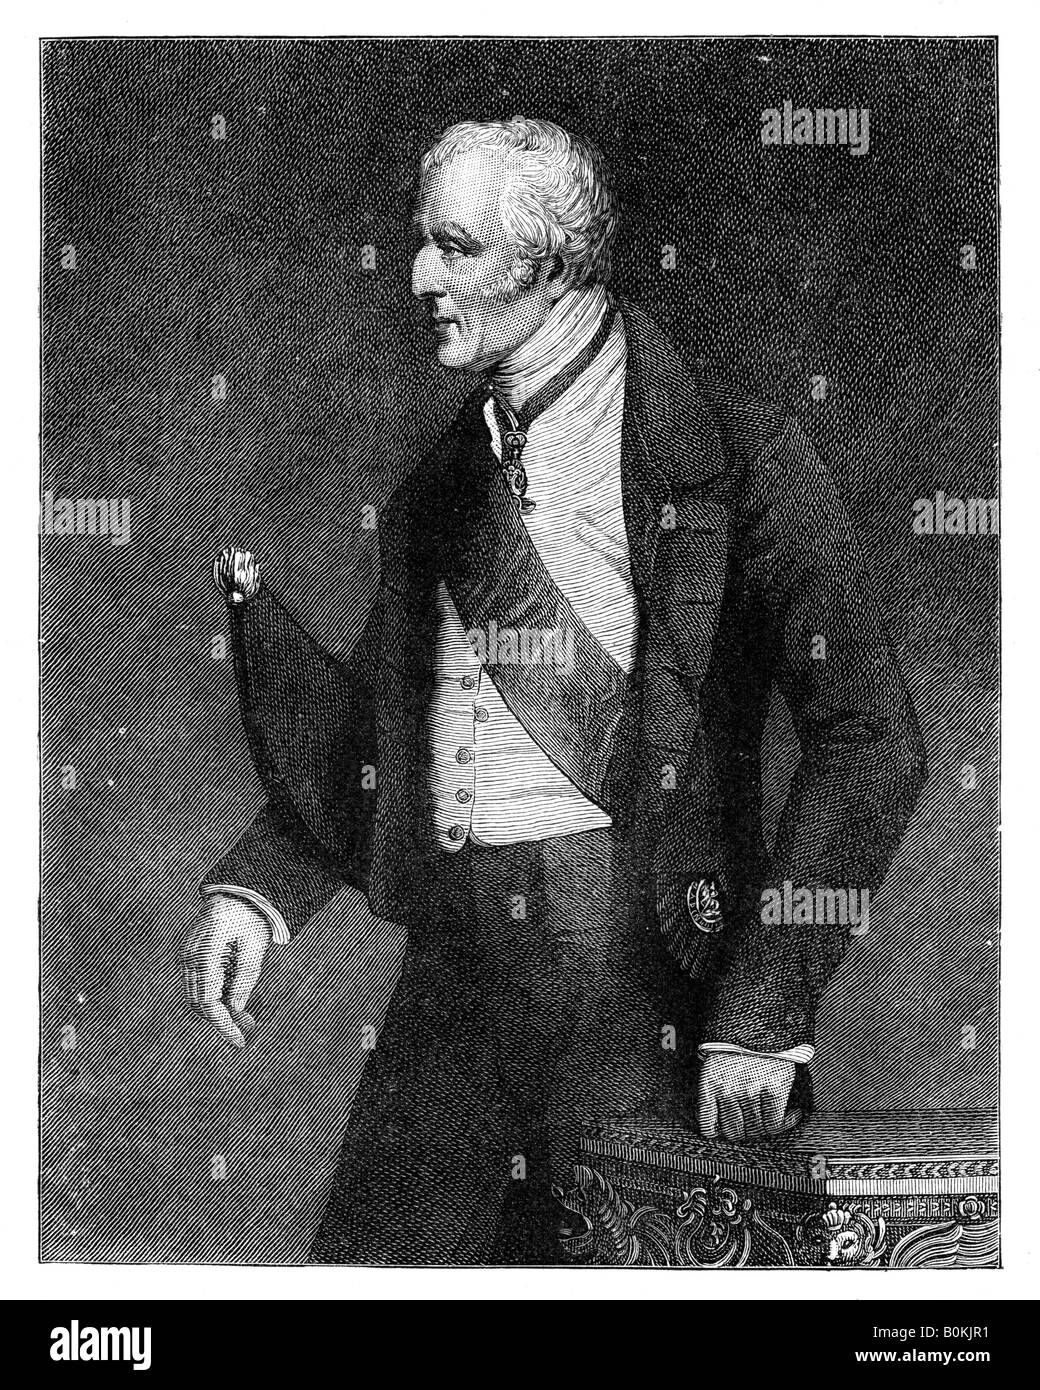 Arthur Wellesley, 1st Duke of Wellington, British soldier and statesman, mid-19th century, (c1888).  Artist: Unknown - Stock Image